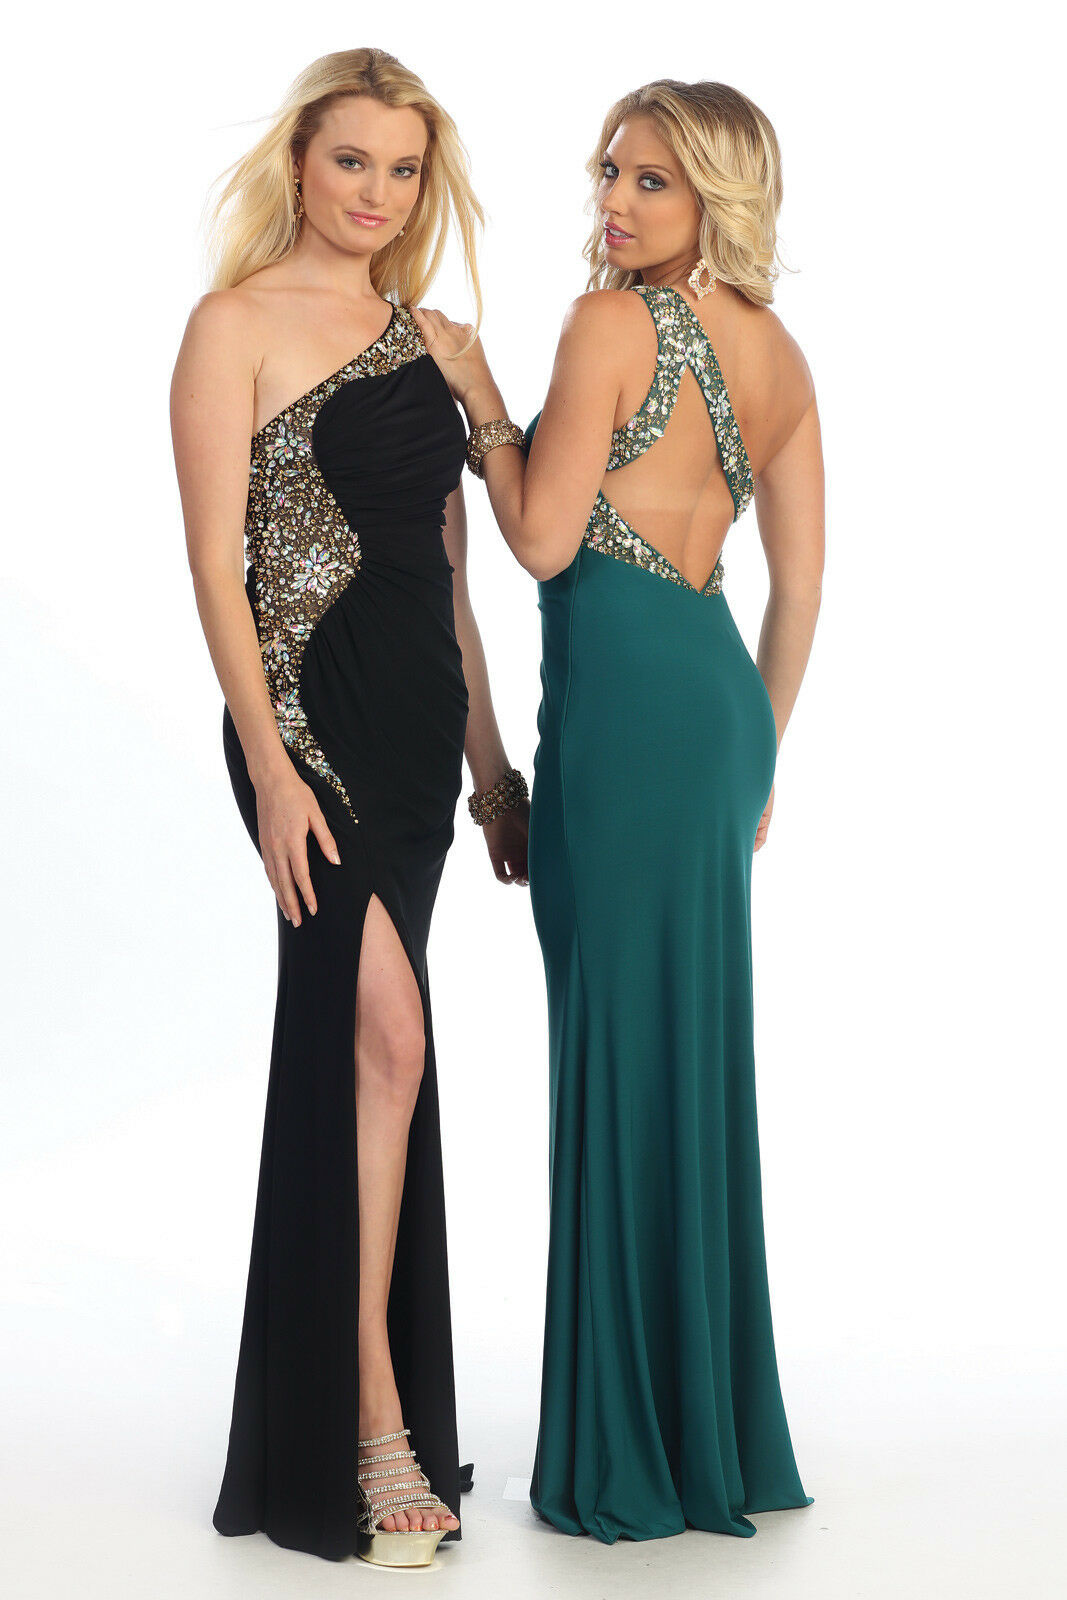 Sexy Stretchy Gown Prom Dress Gala Pageant Formal Formal Formal Occasion Party Teal Green 14 f39903